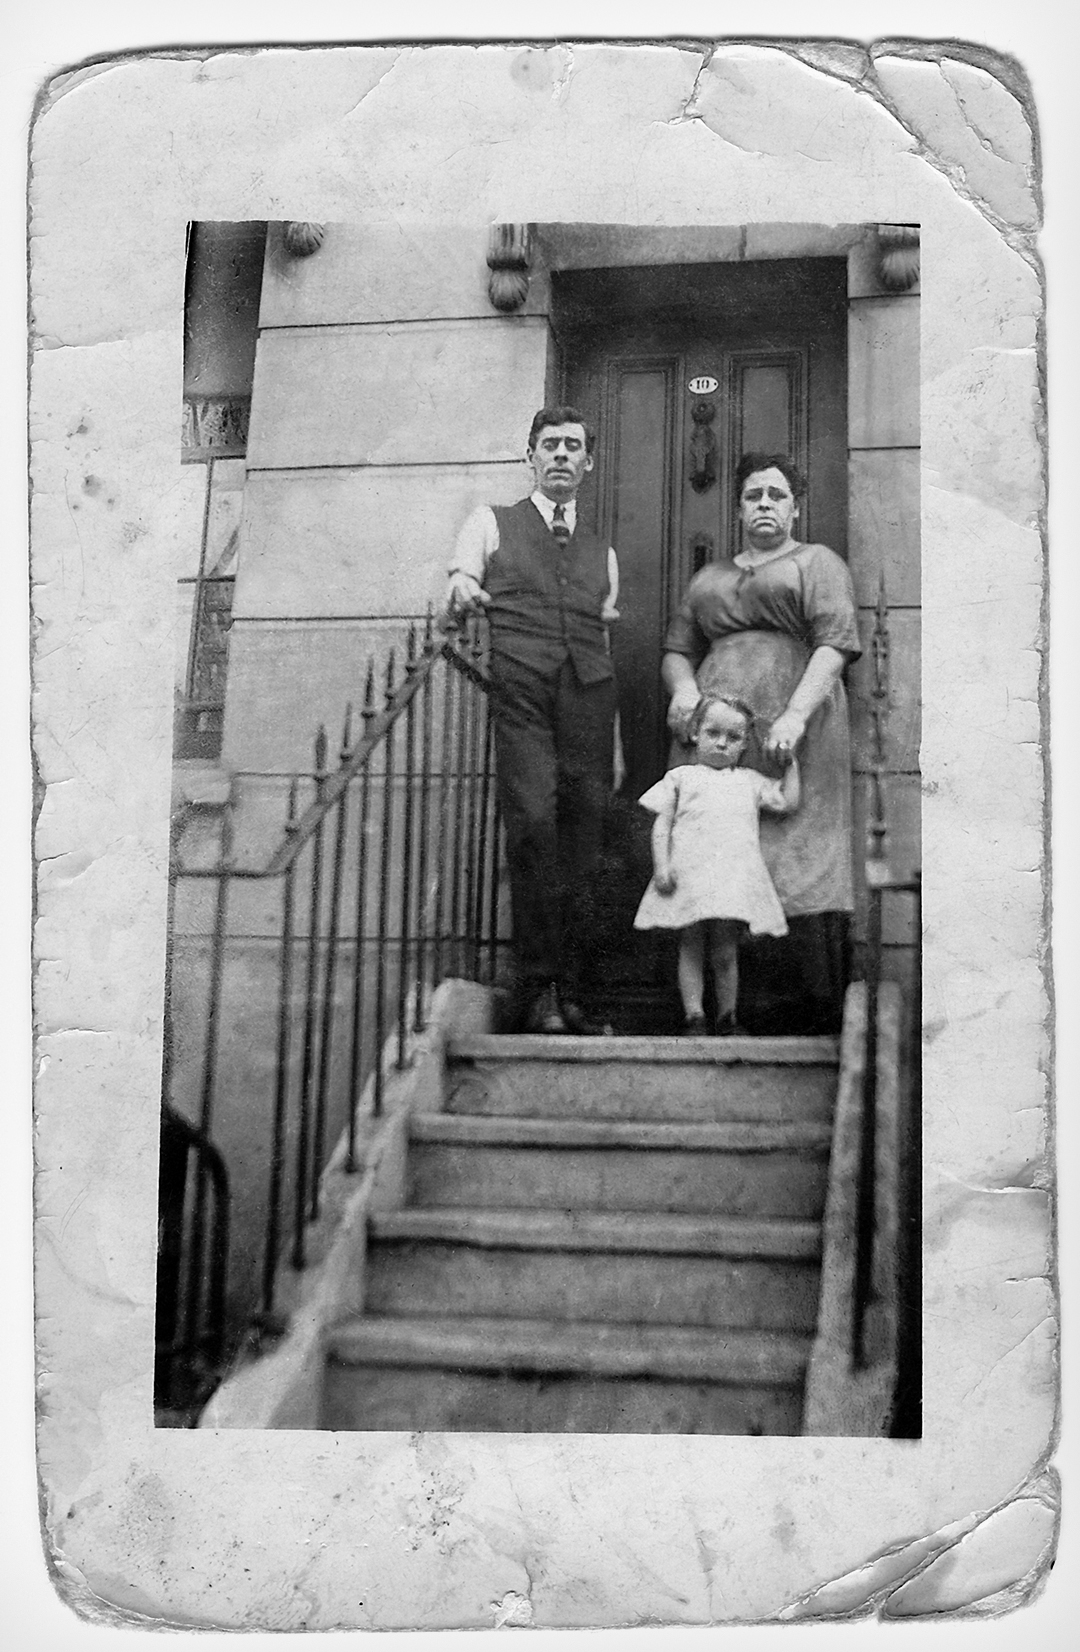 Retored photograph family on house steps  early 1900s